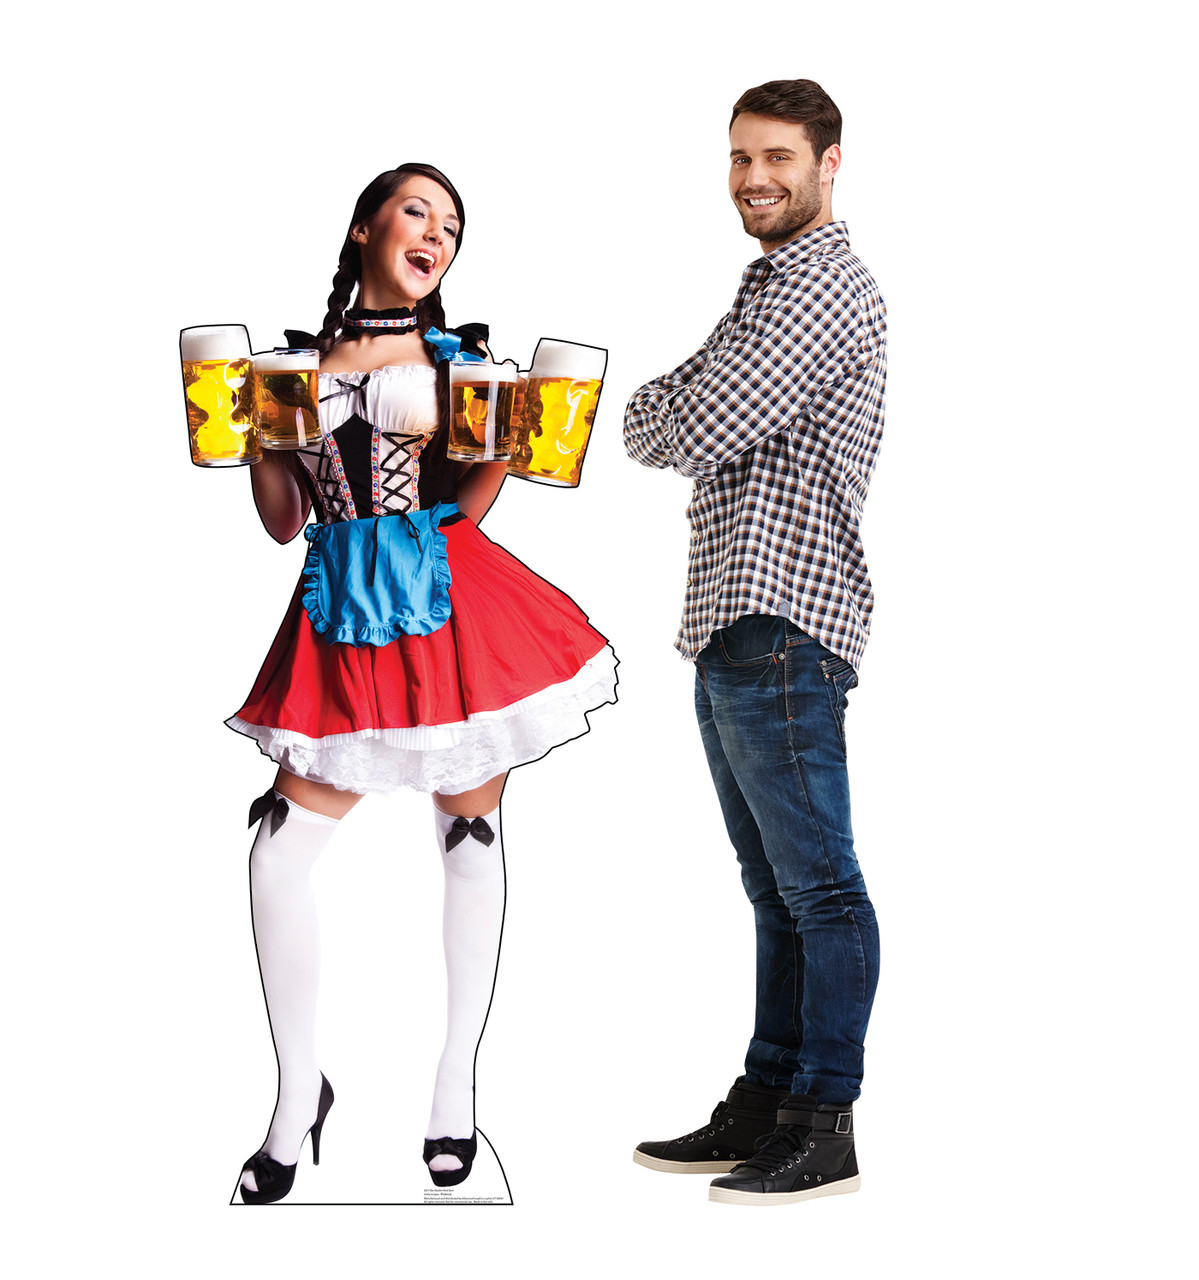 Life-size cardboard standee of a Bar Maiden in Red Skirt with model.